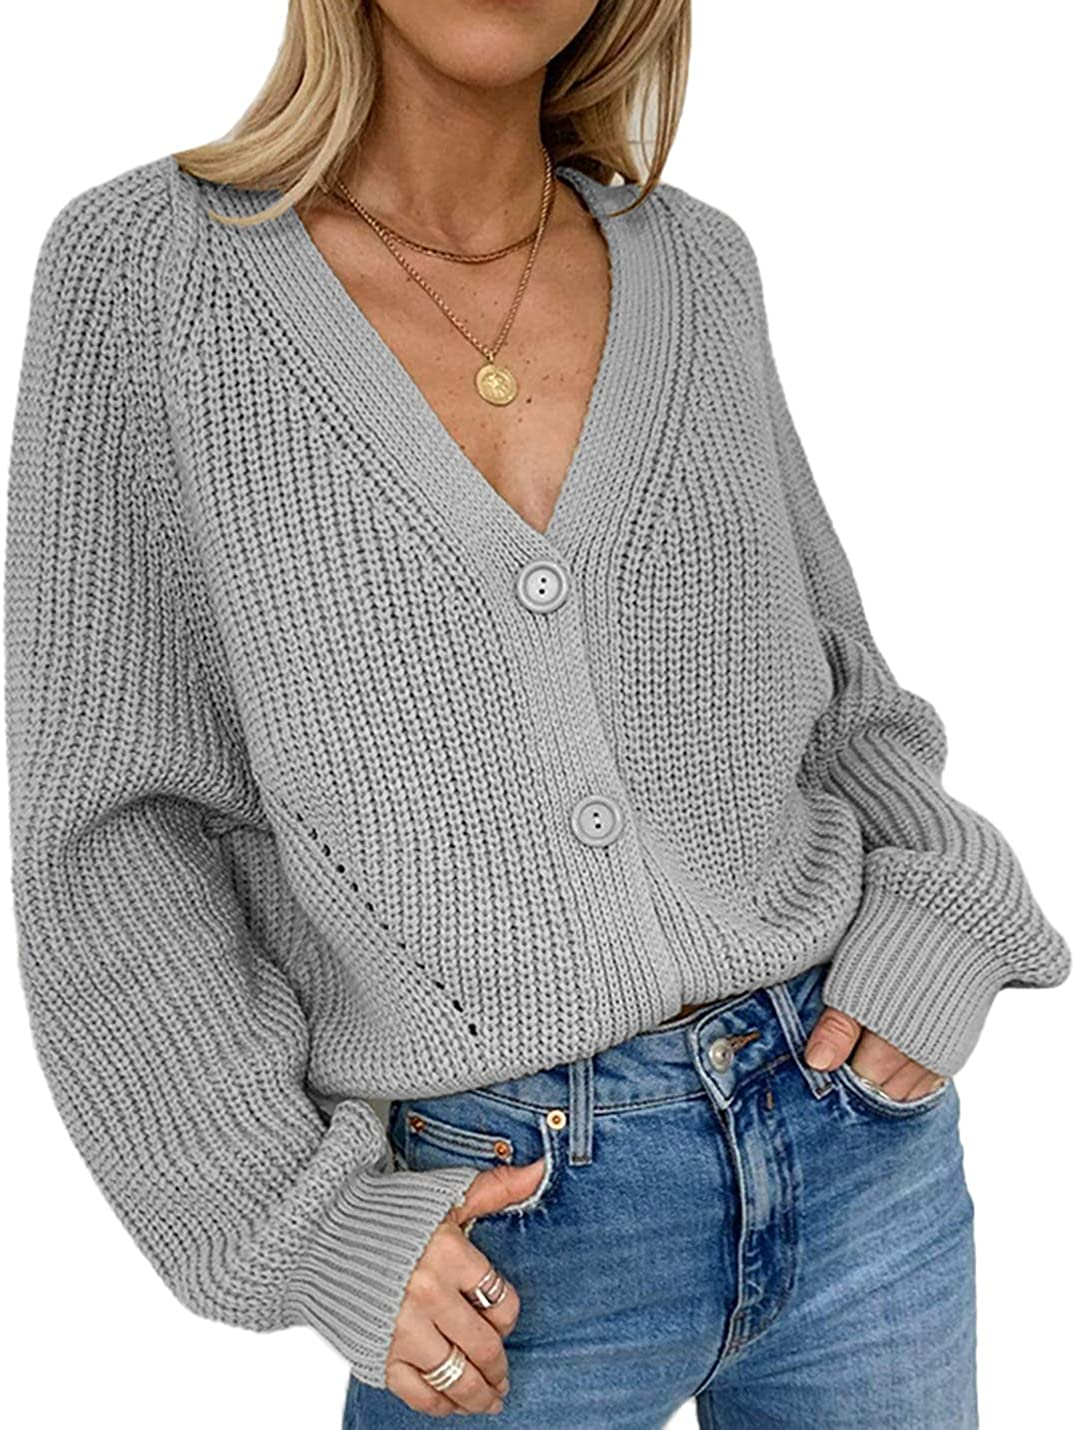 Uaneo Womens Ribbed Knit V-Neck Long Balloon Sleeve Button Down Cardigan Sweaters(Grey-XL)